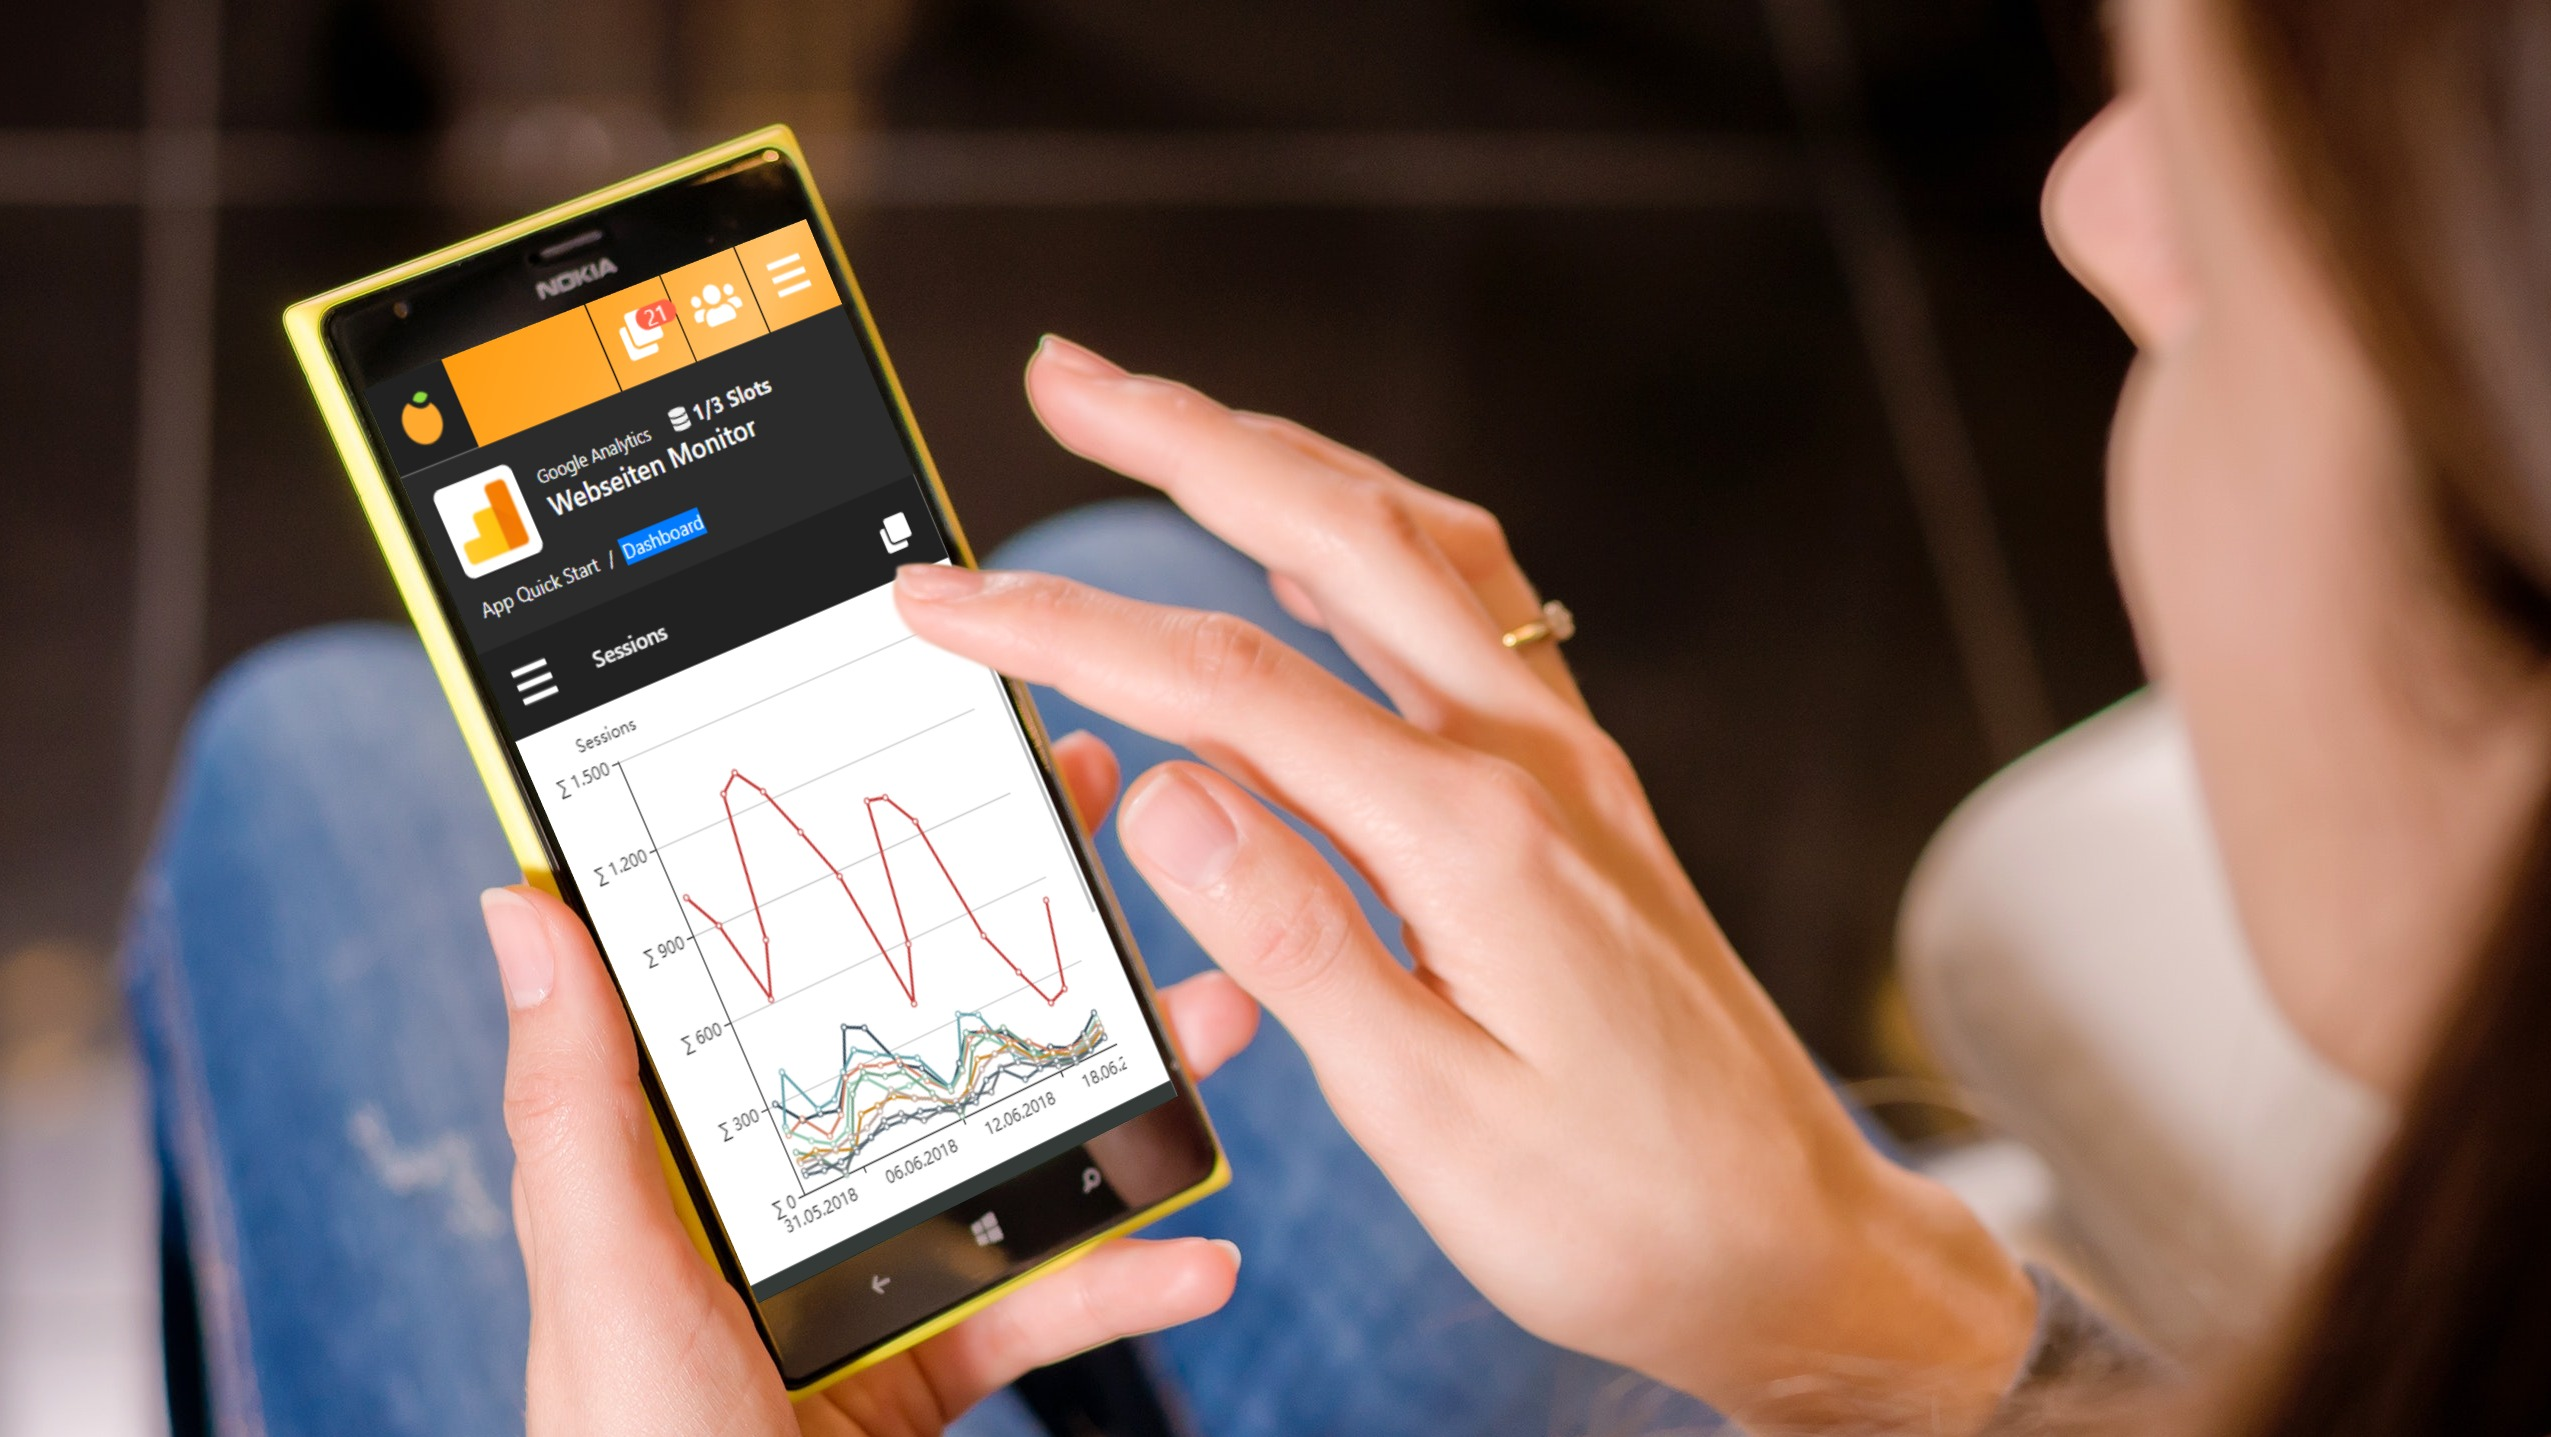 Reporting BI tool for mobile devices - women on smartphone tapping mobile dashboard